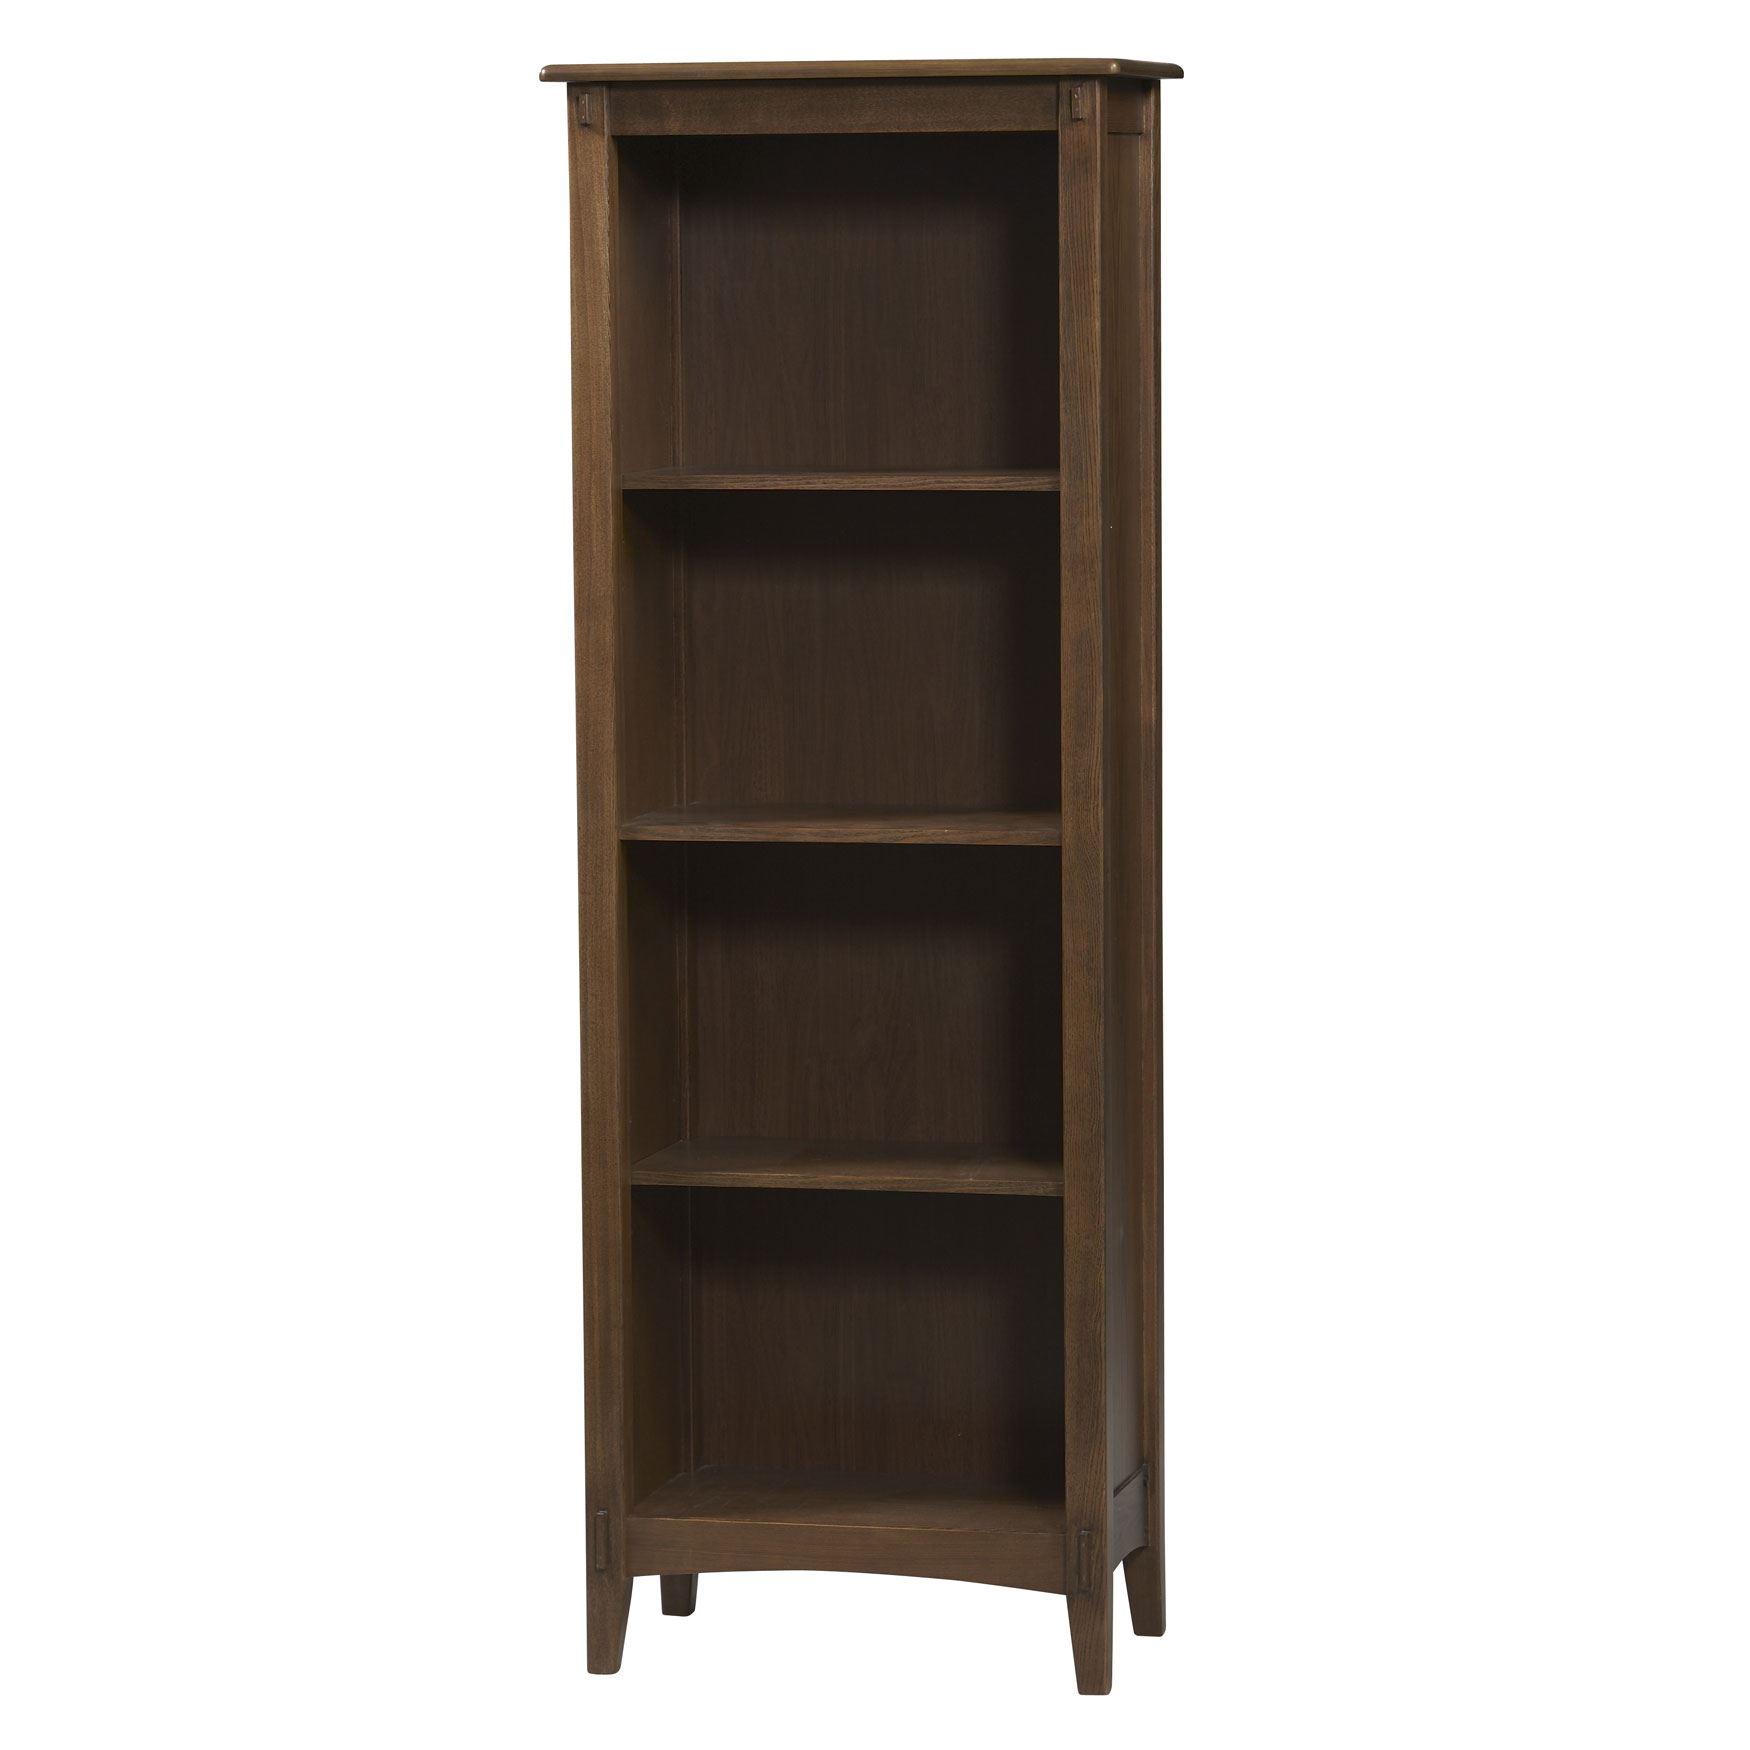 Image of: Rustic Mission Style Bookcase